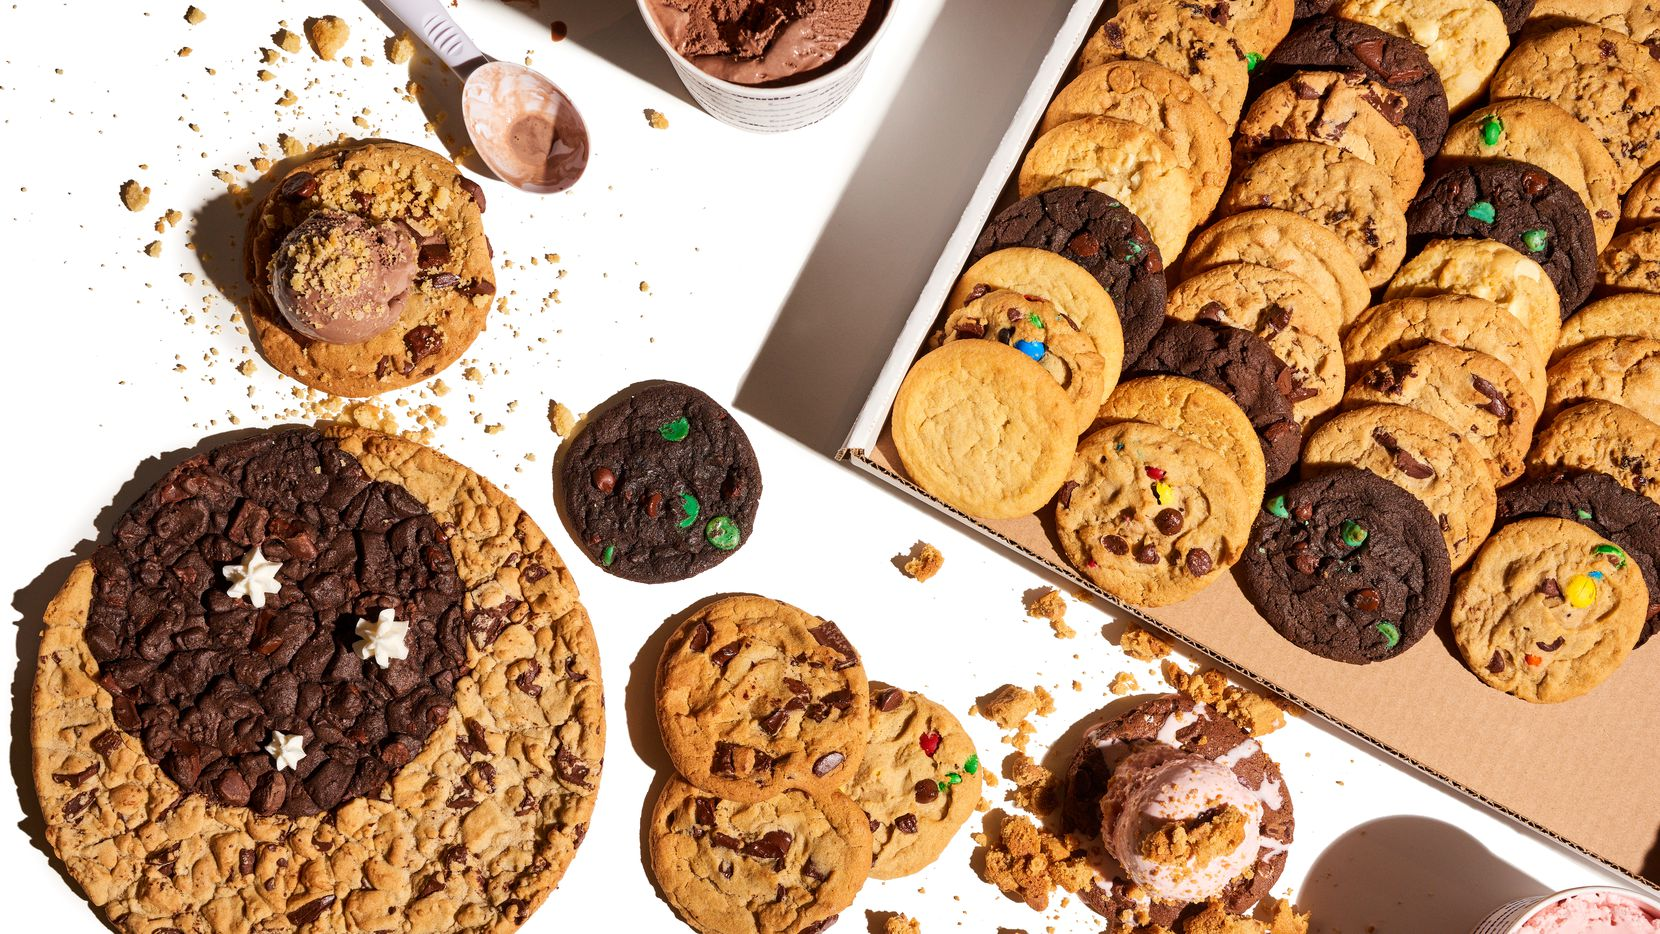 Insomnia Cookies opened in Deep Ellum on Feb. 10, 2021 and was the company's first Dallas shop. The company also has shops in Fort Worth, Denton and Dallas' Victory Park.